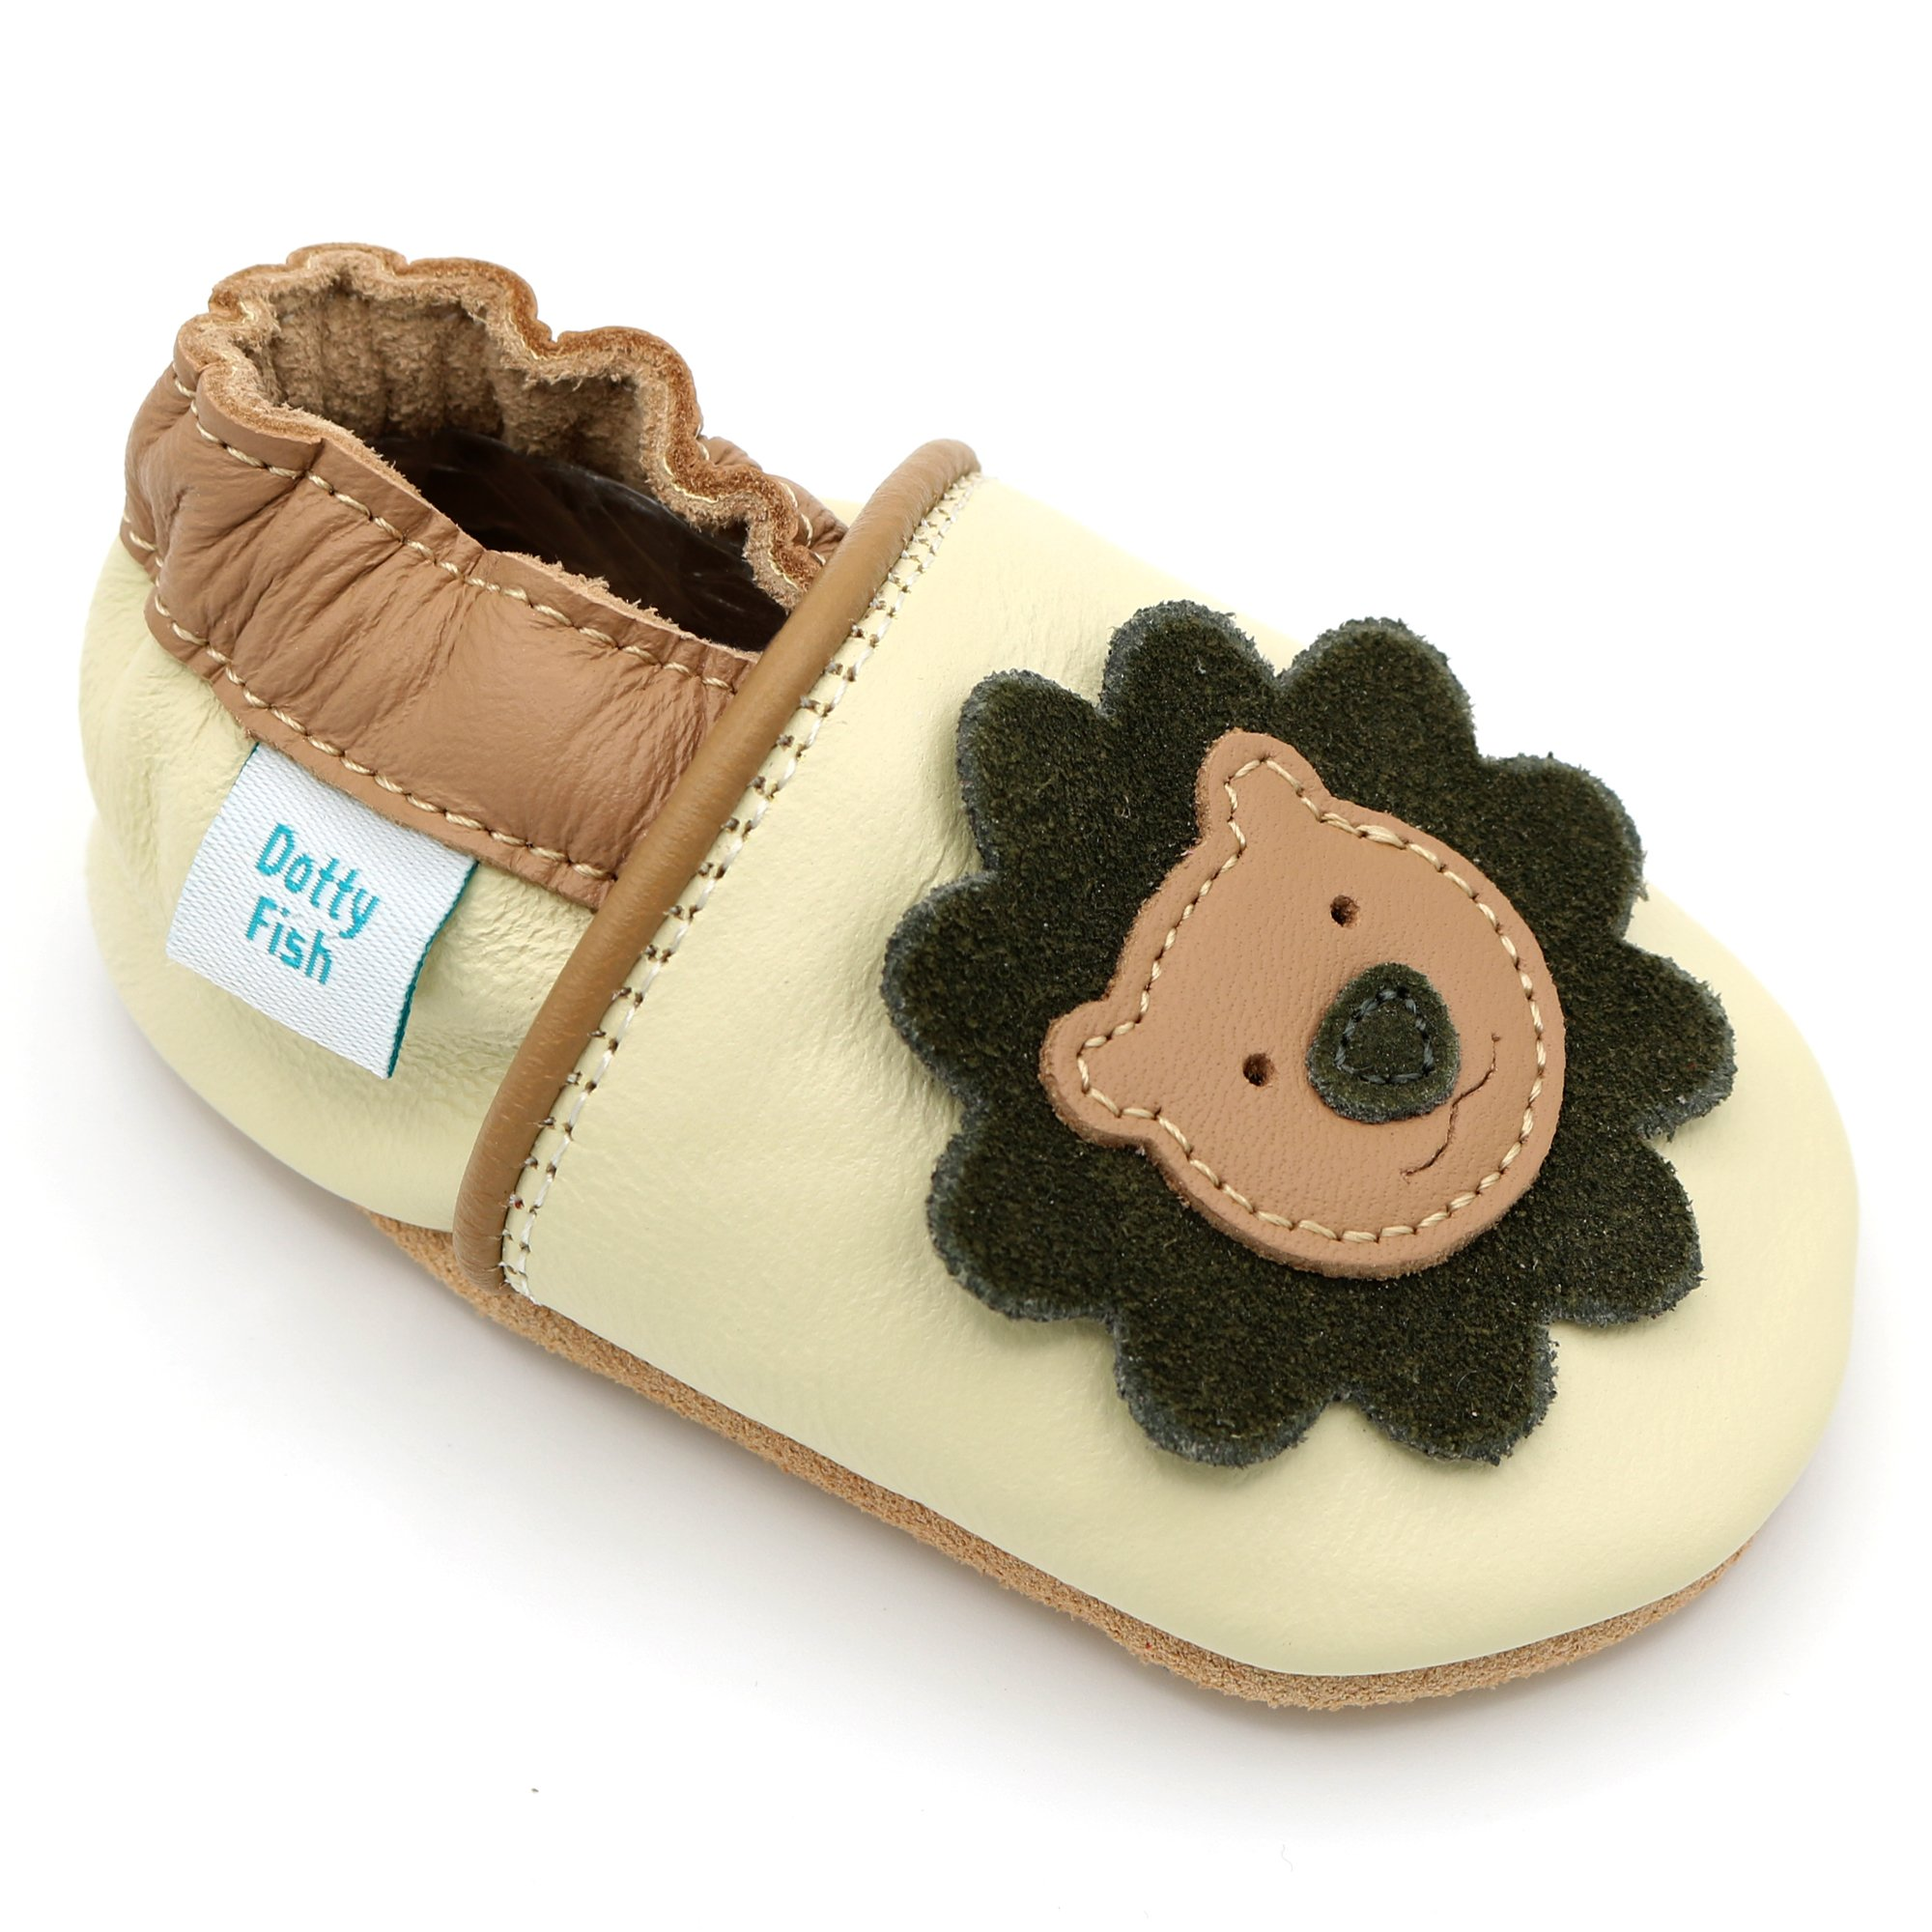 60f31923404d4 Dotty Fish Soft Leather Baby Shoes. 0-6 Months to 4-5 Years. With Dinosaur